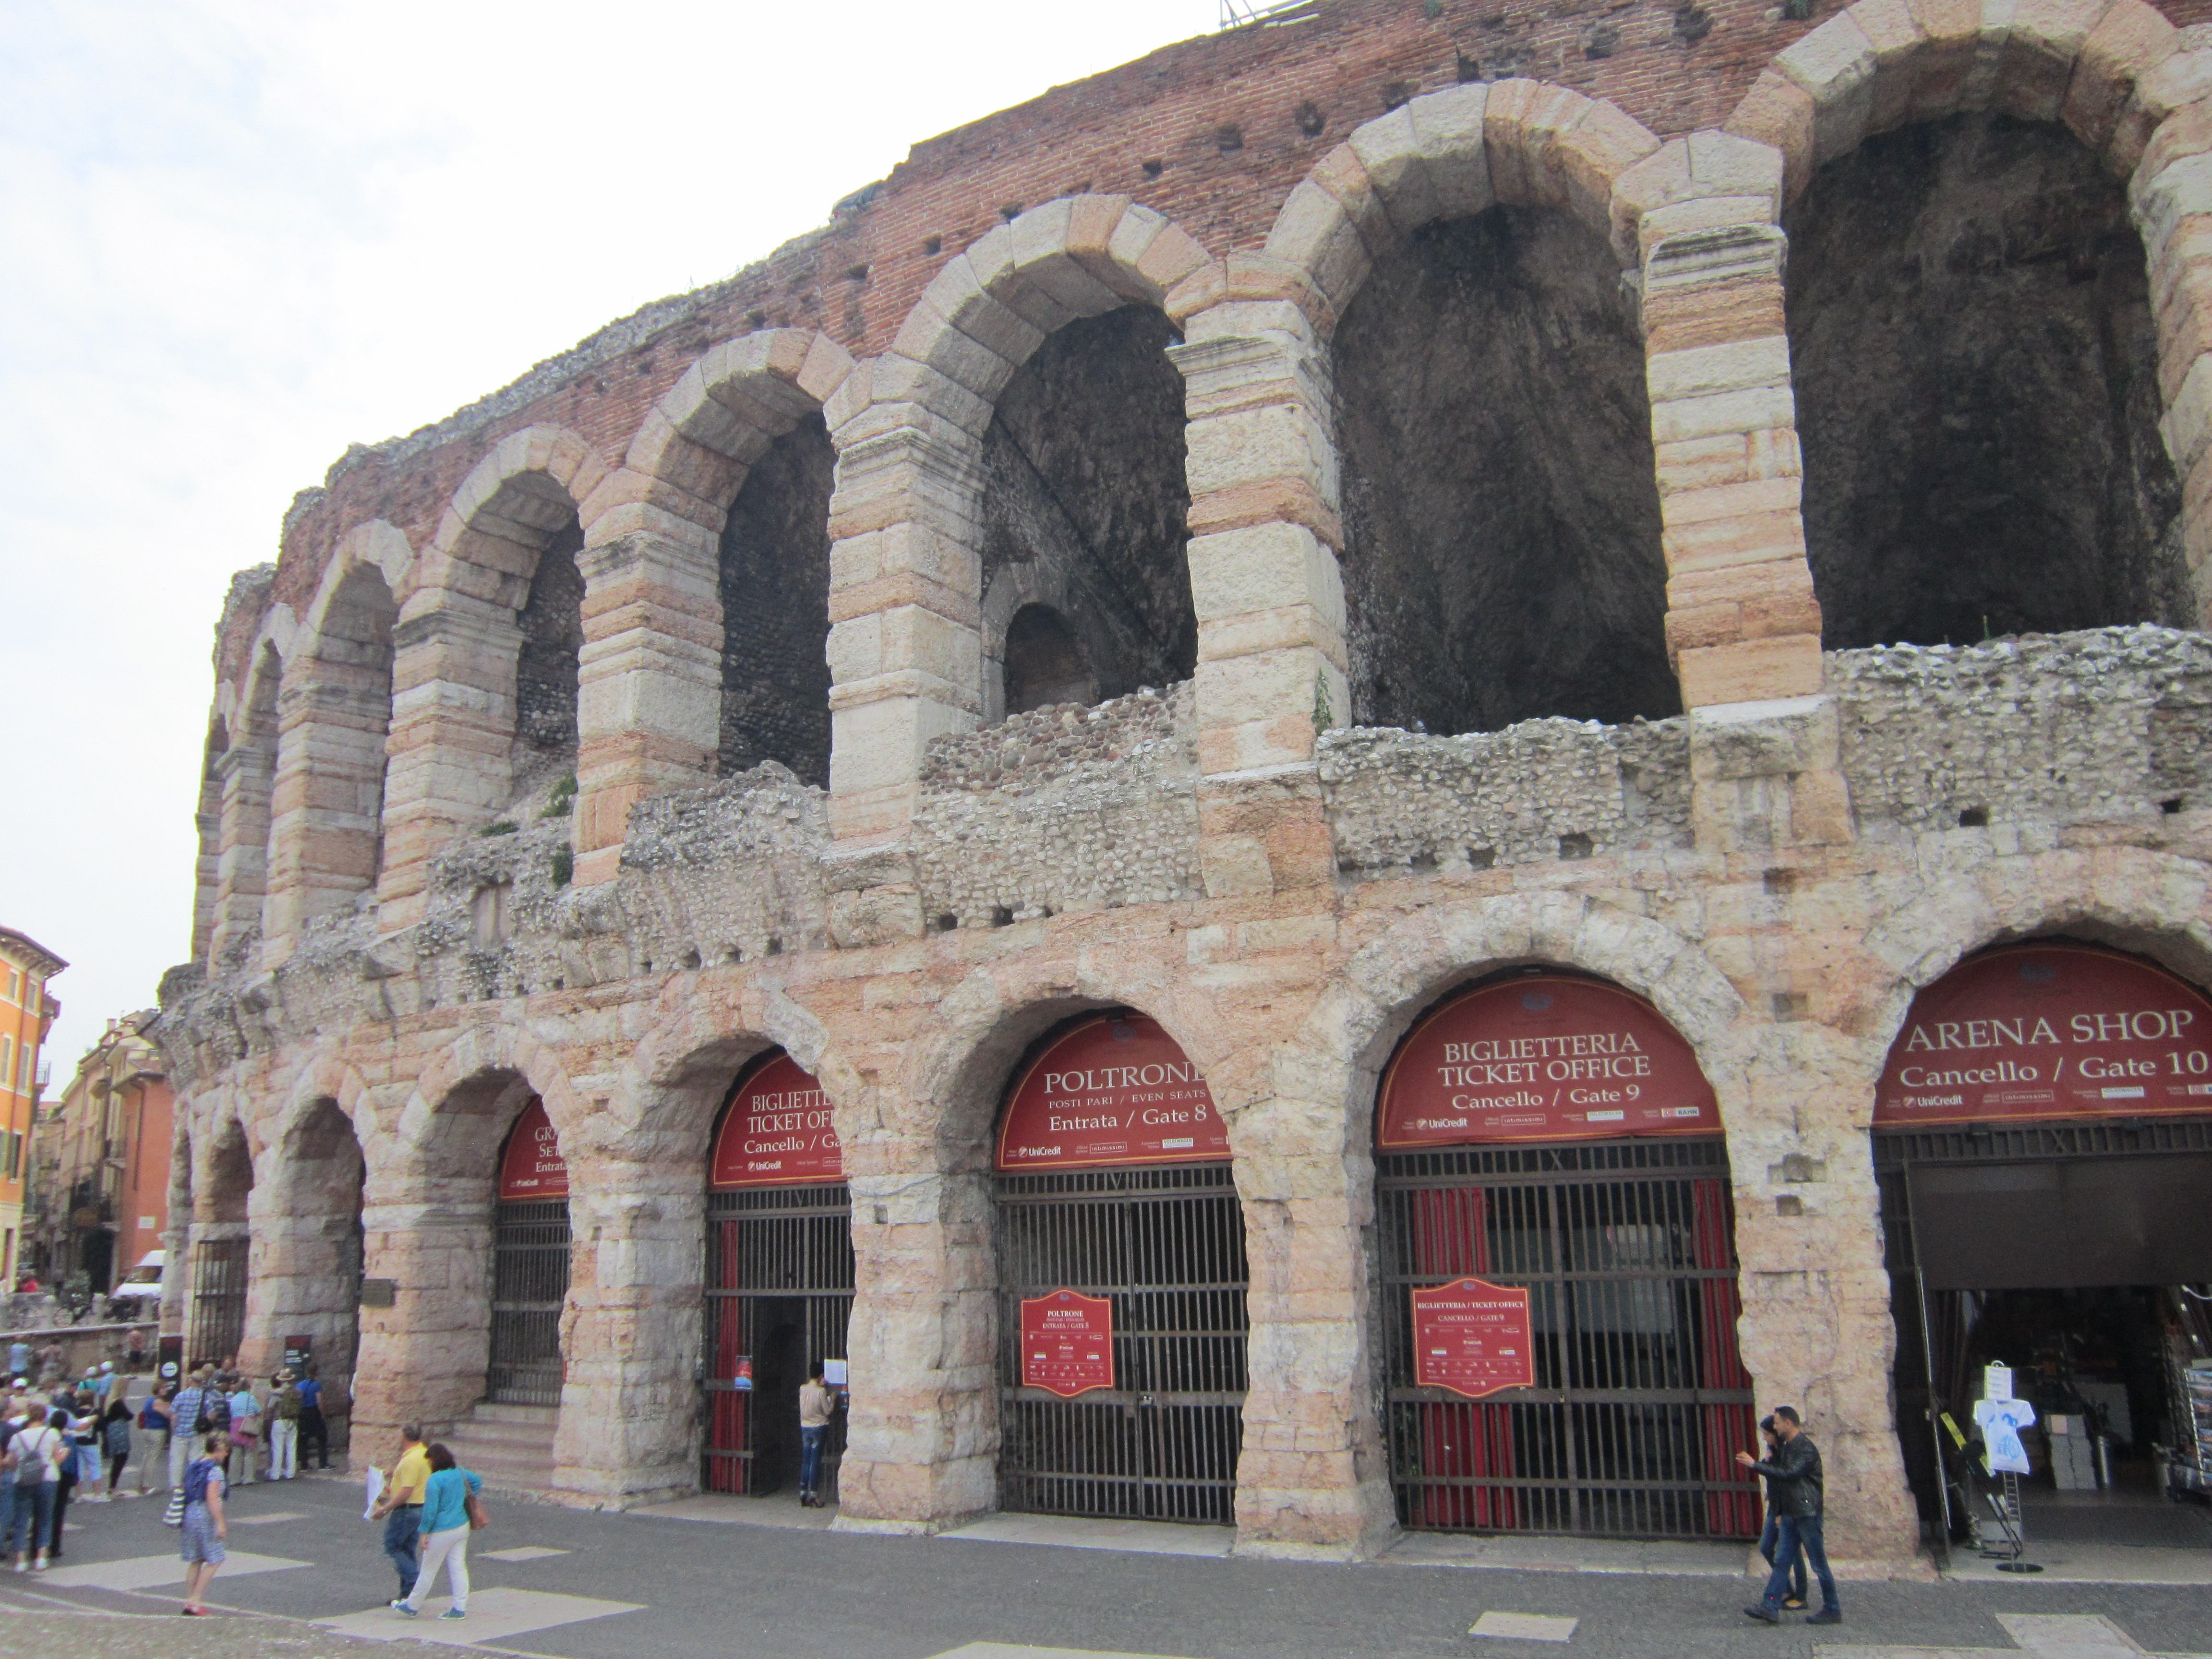 The outside of the Roman arena in Verona